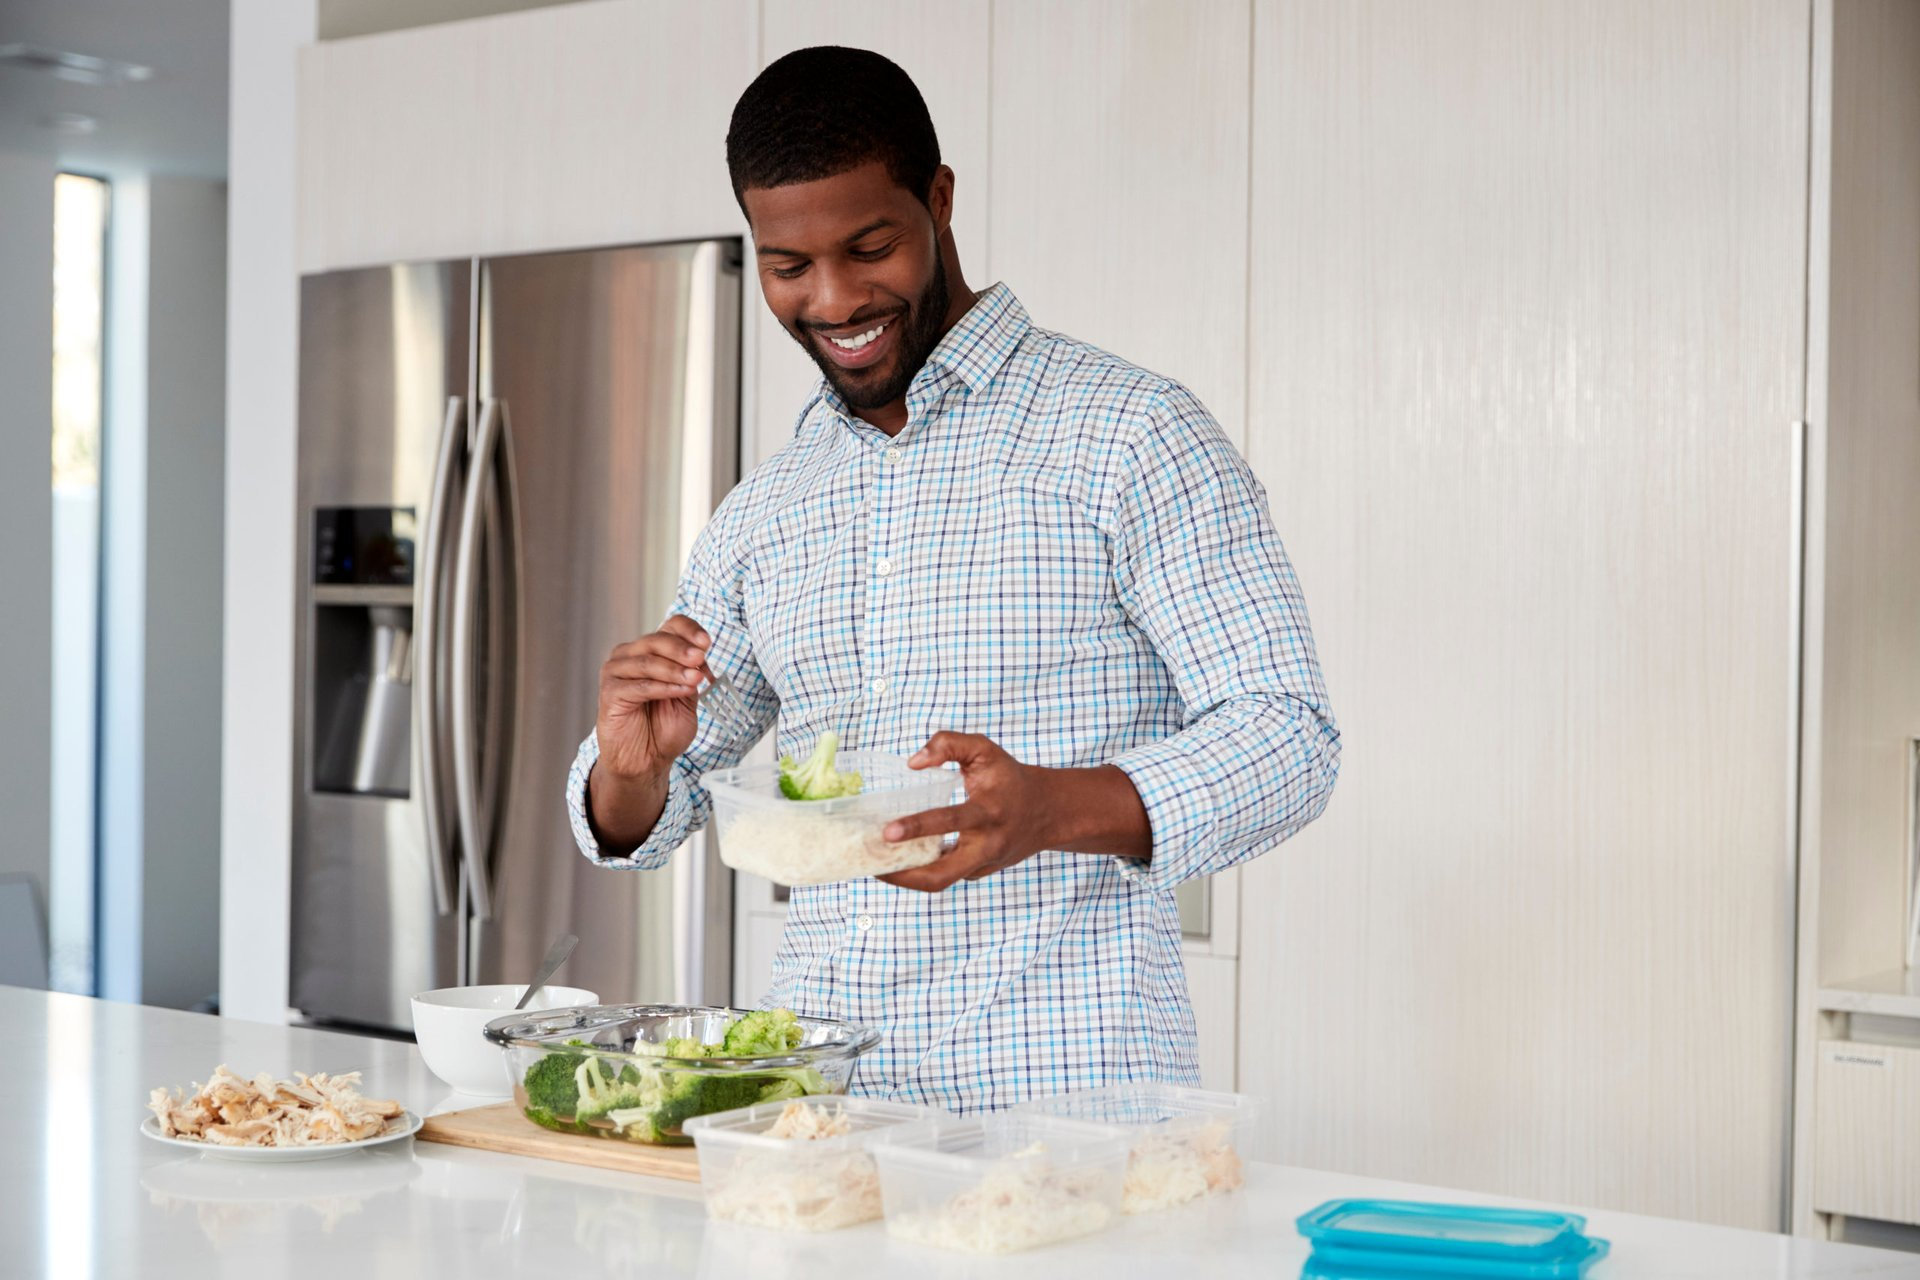 A man enjoying salad leftovers in the kitchen